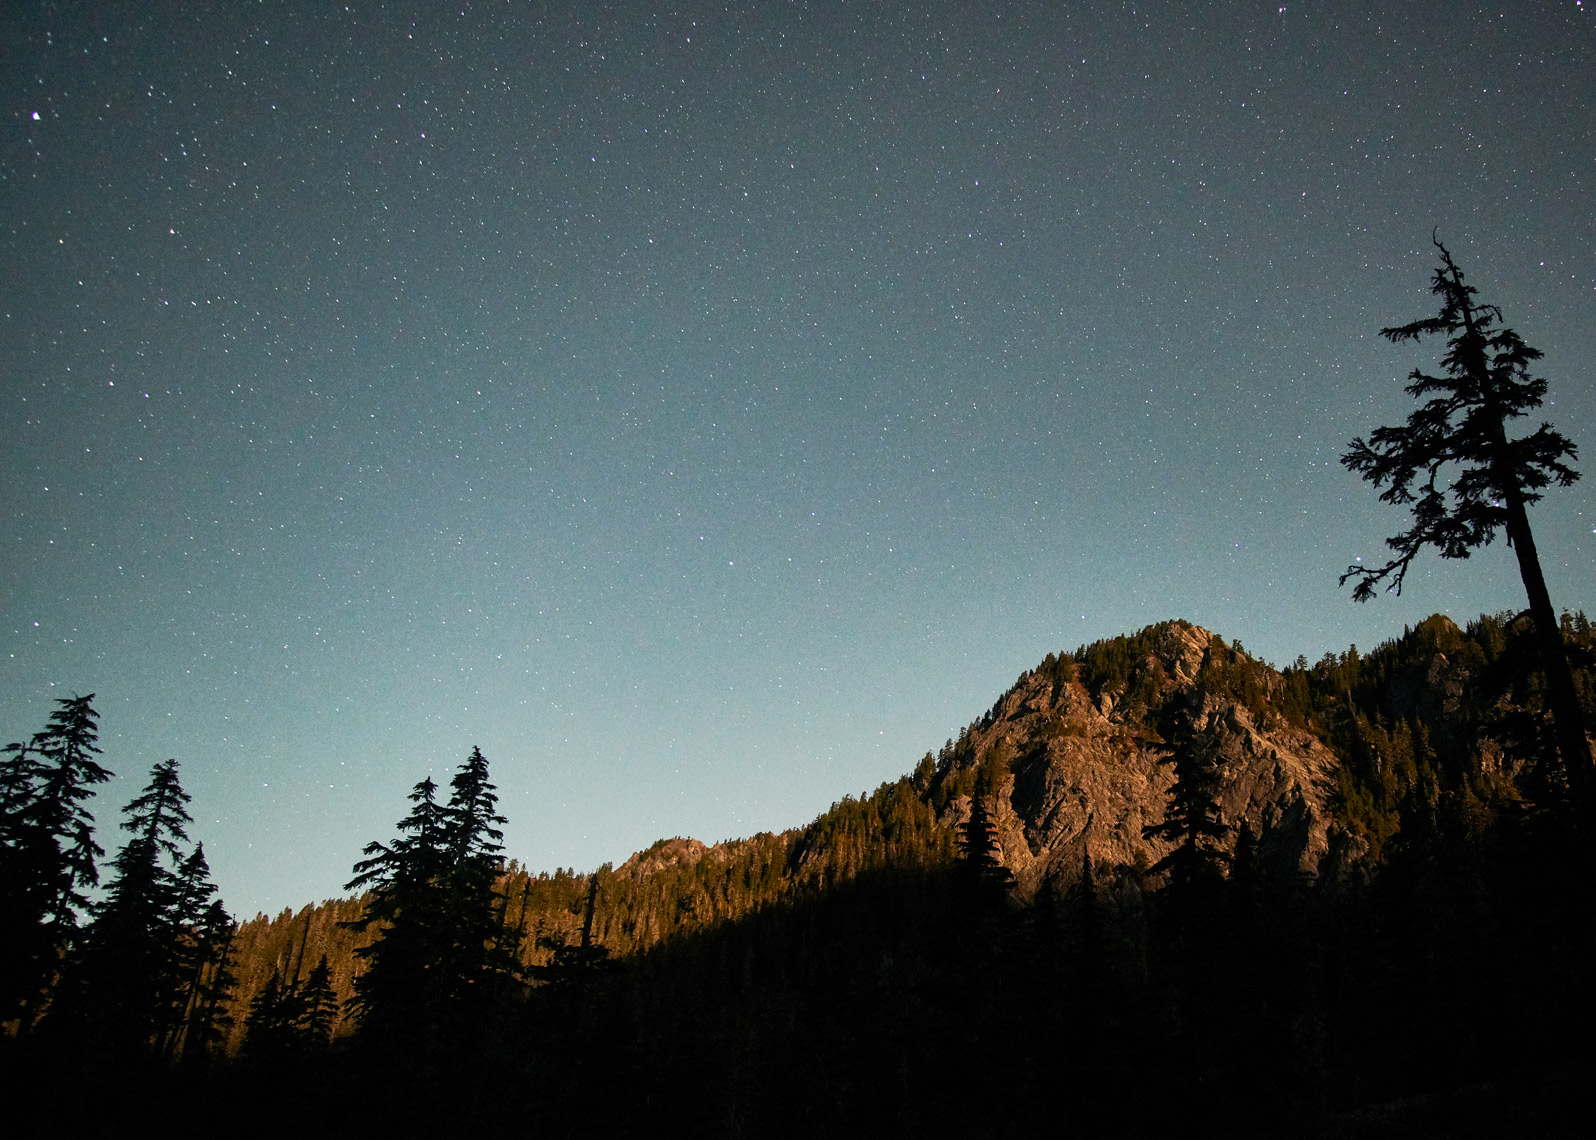 night landscape photography of mountain and trees